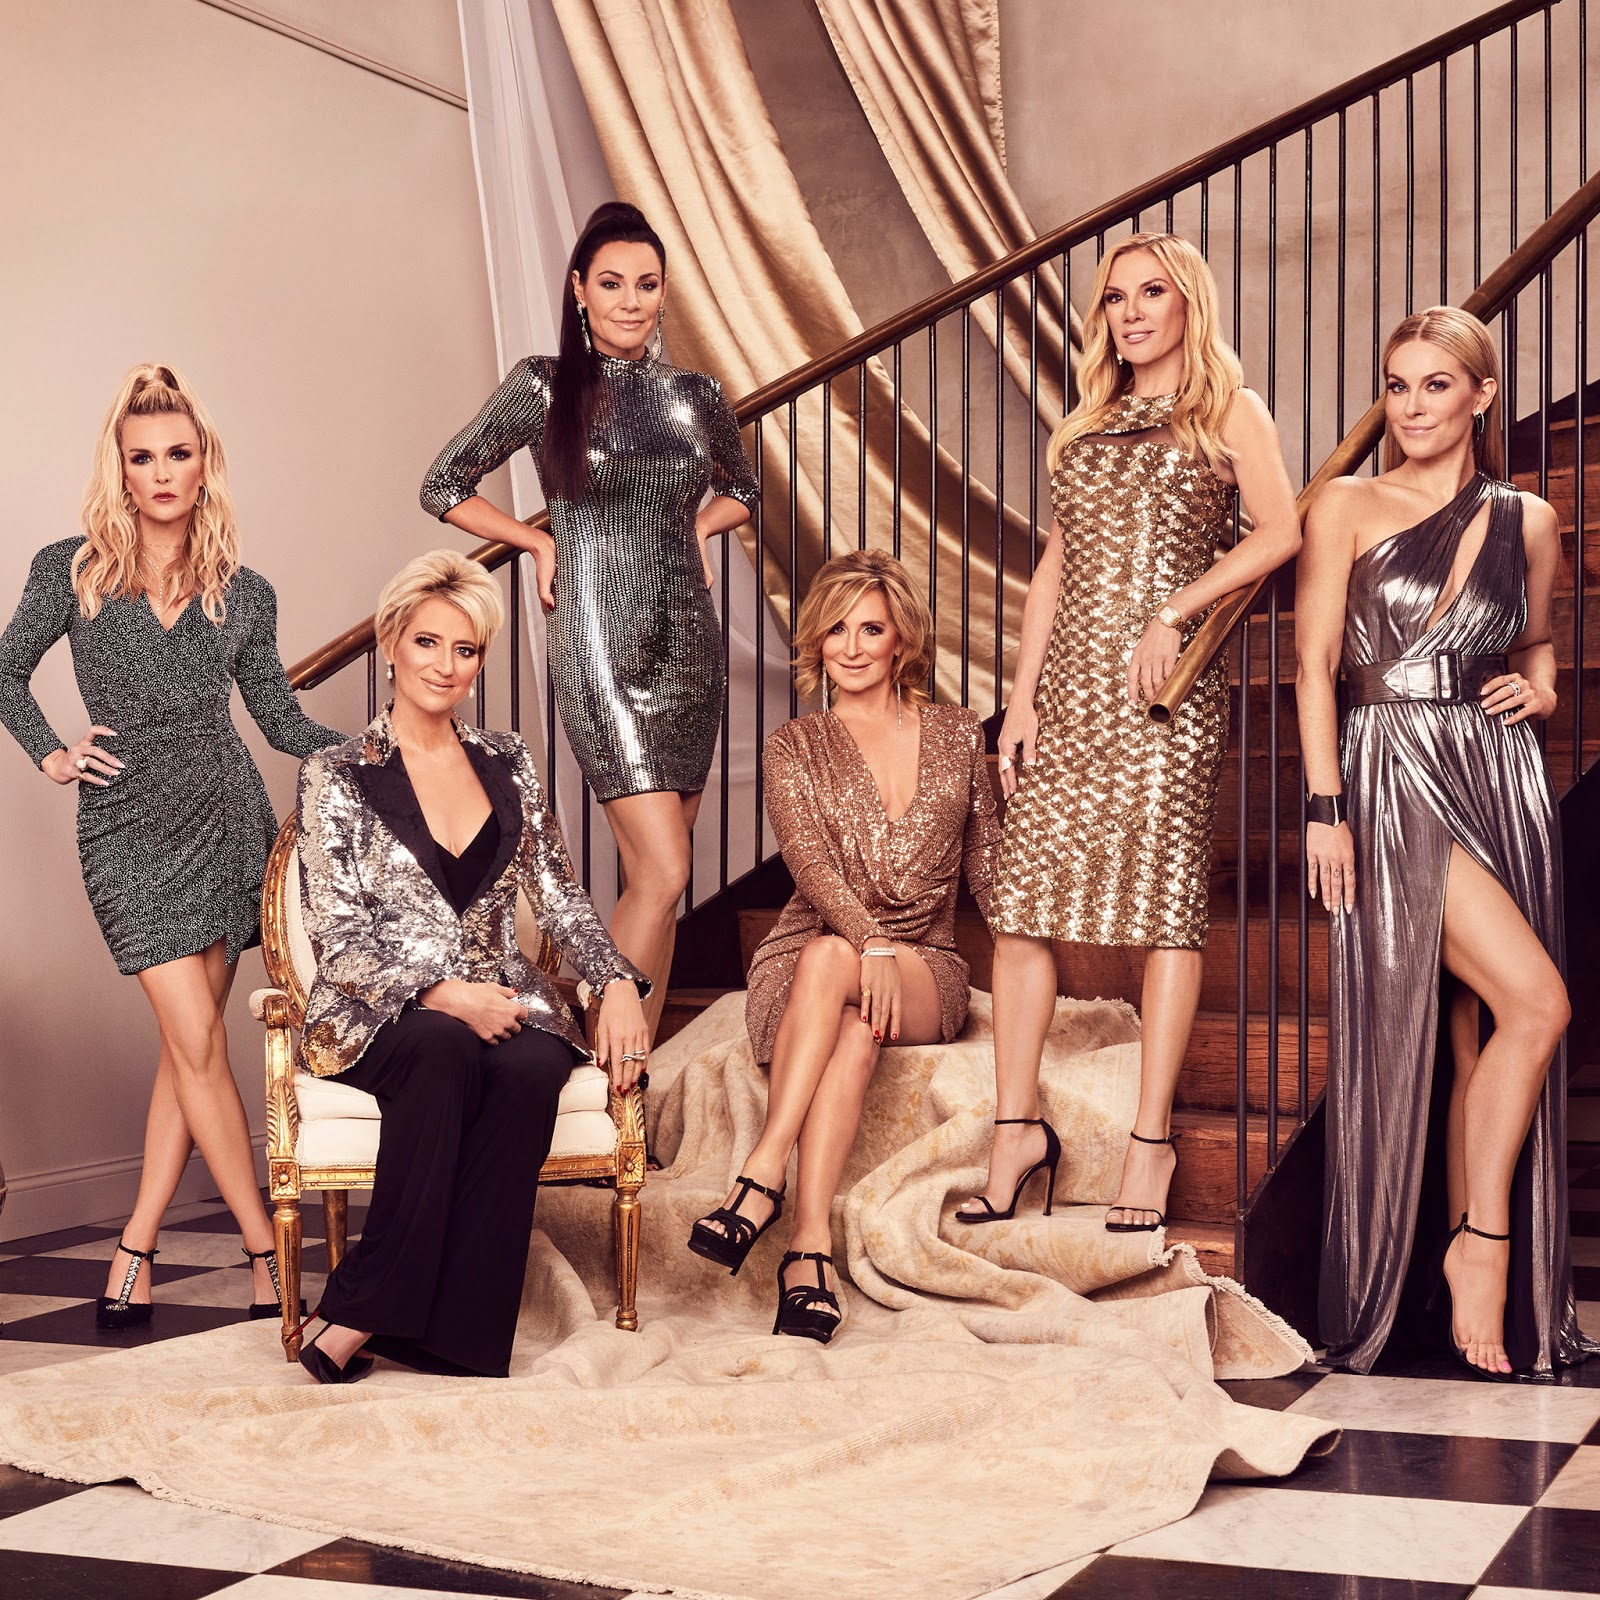 Watch The Real Housewives of New York City - Season 8